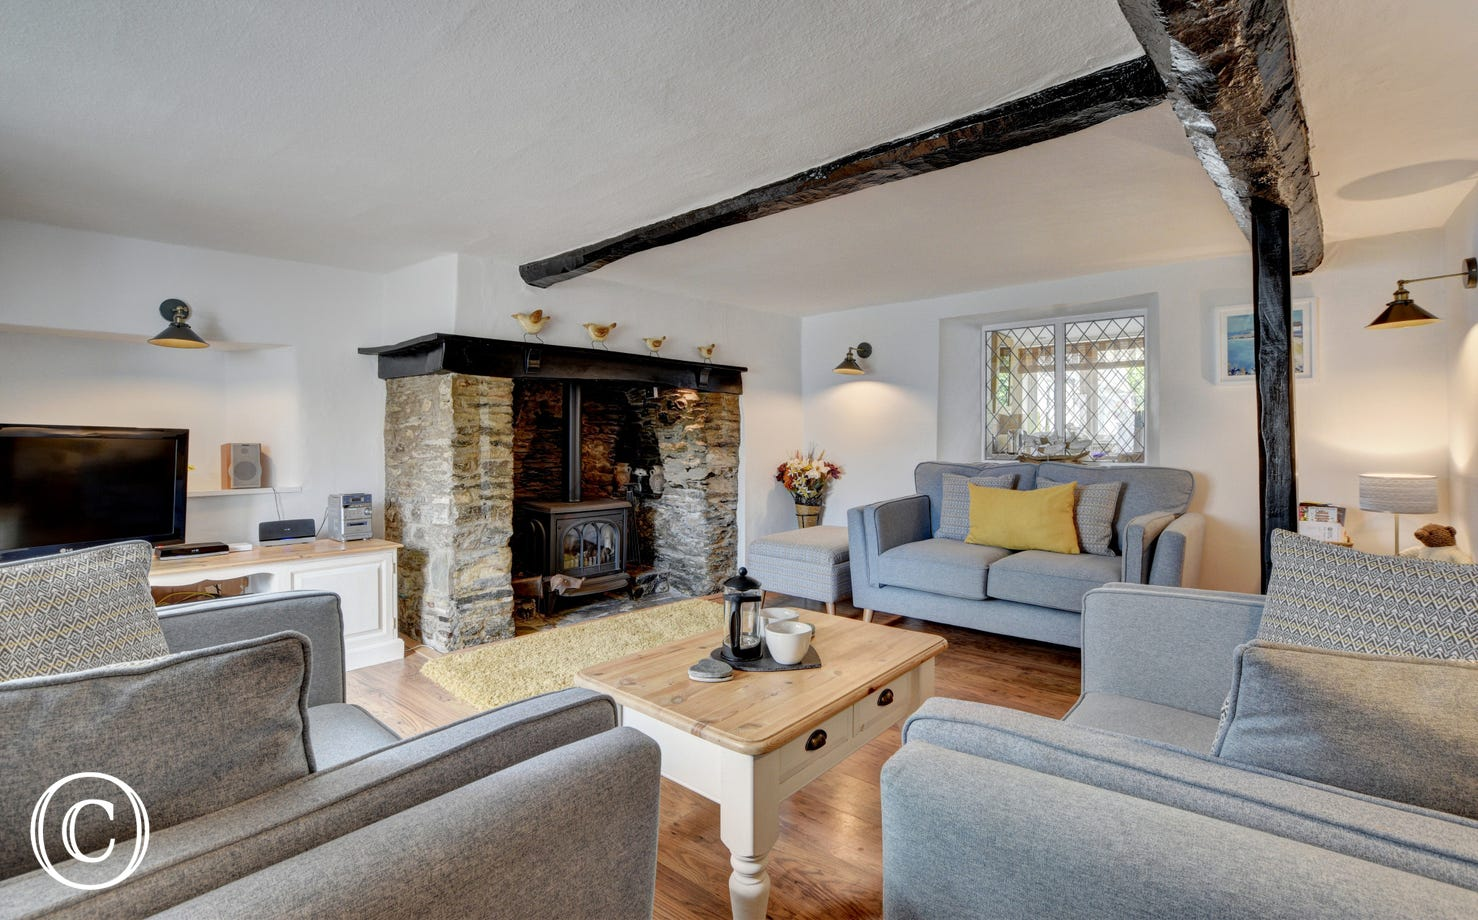 The inglenook fireplace, complete with bread oven and gas coal burning effect stove in the living room will keep you cosy on cooler evenings